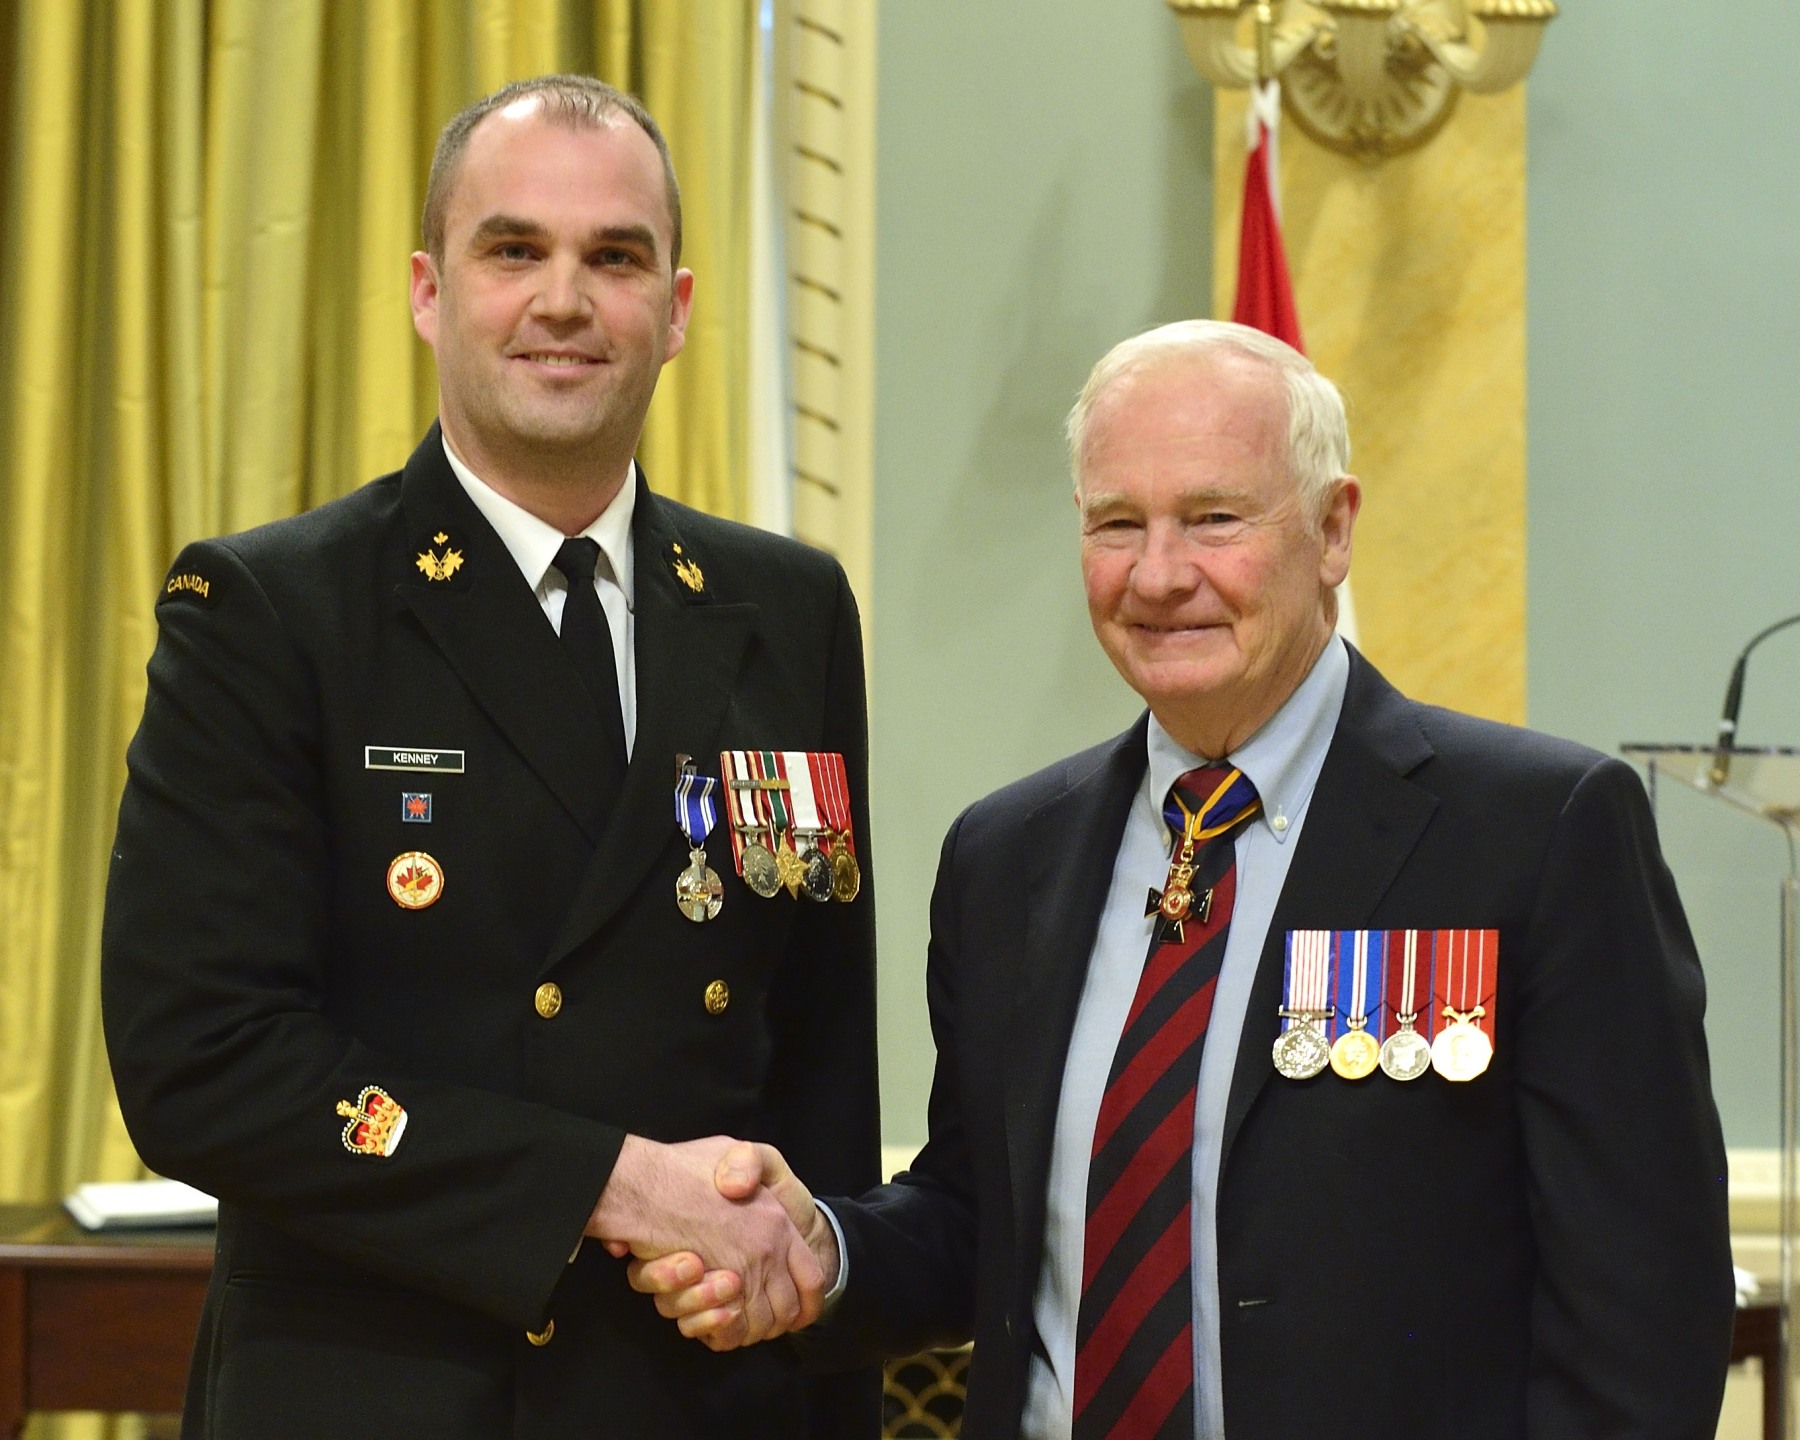 Petty Officer 1st Class Jeffery Kenney, M.S.M., C.D. (Yarmouth, Nova Scotia) received the Meritorious Service Medal. As the Signals Intelligence team leader from February to November 2012, Petty Officer 1st Class Kenney greatly contributed to improving protection for coalition forces operating within Kabul. He worked relentlessly to refine the tactics, techniques and procedures related to intelligence collection and dissemination. He also enhanced threat knowledge, and enabled the identification and interdiction of insurgent networks. Through these accomplishments, Petty Officer 1st Class Kenney established himself as a leader in his field and significantly bolstered the Canadian Armed Forces' reputation in Afghanistan.